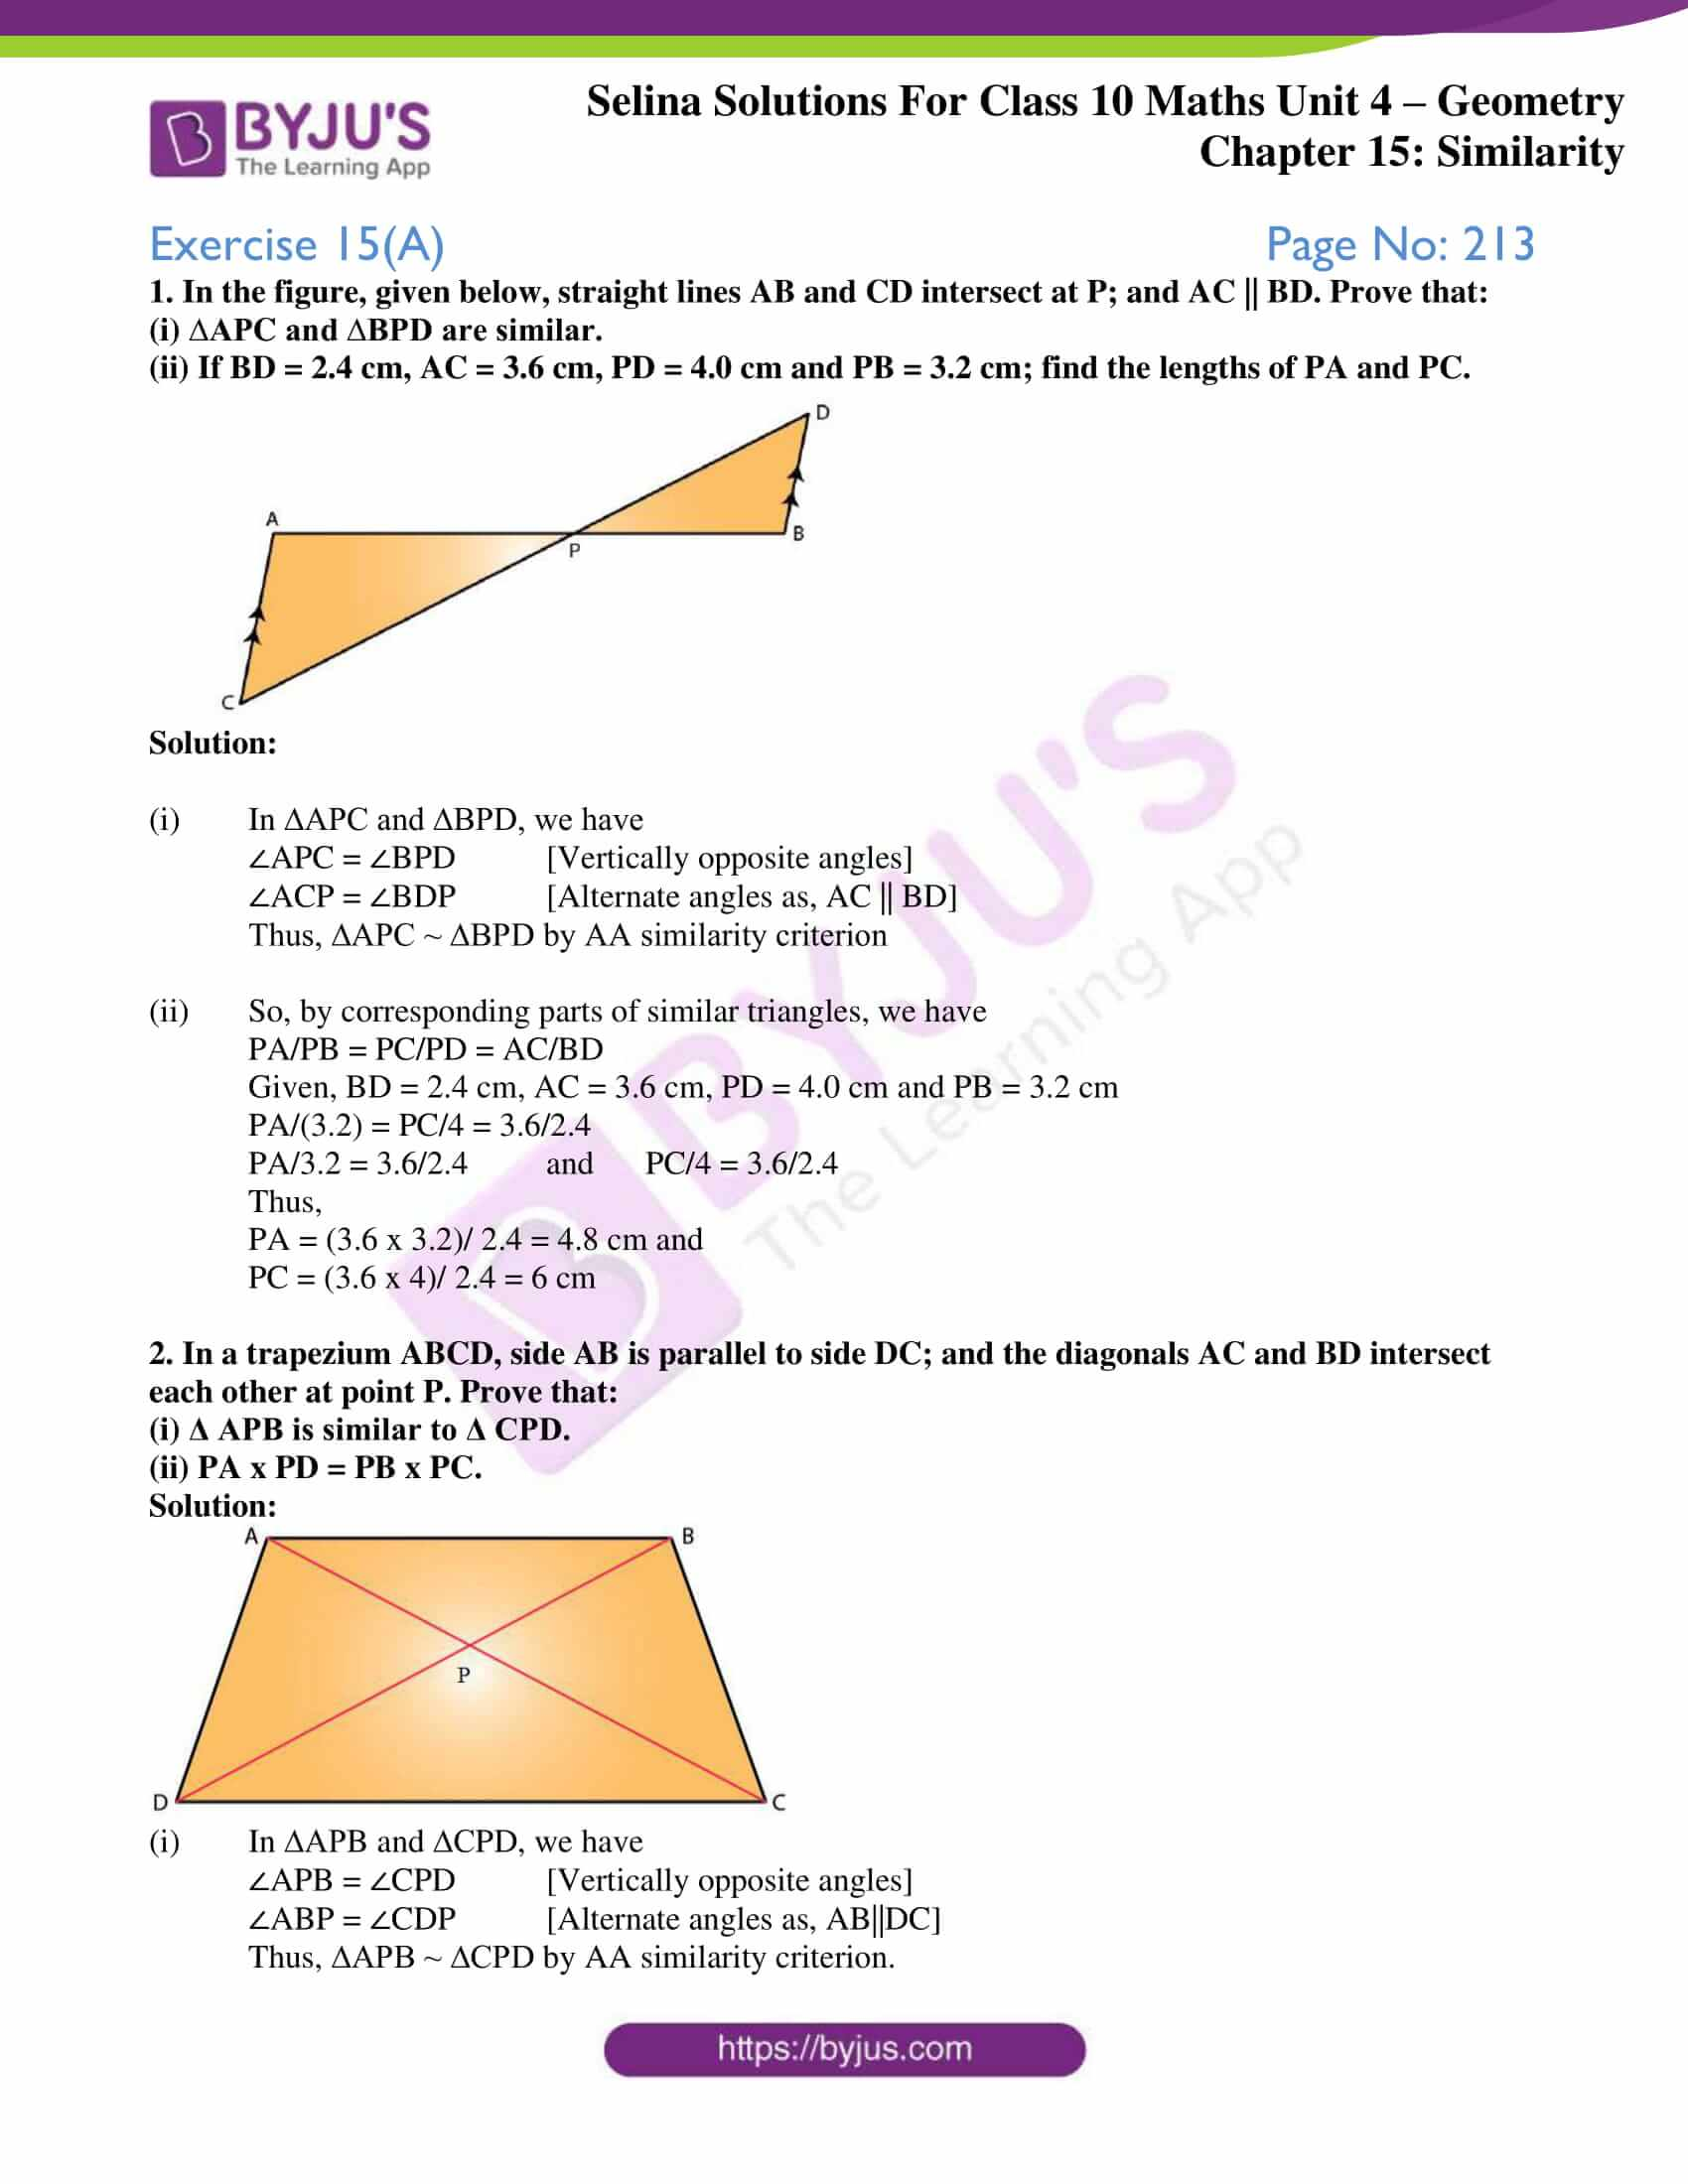 selina solution concise maths class 10 chapter 15 ex a 1